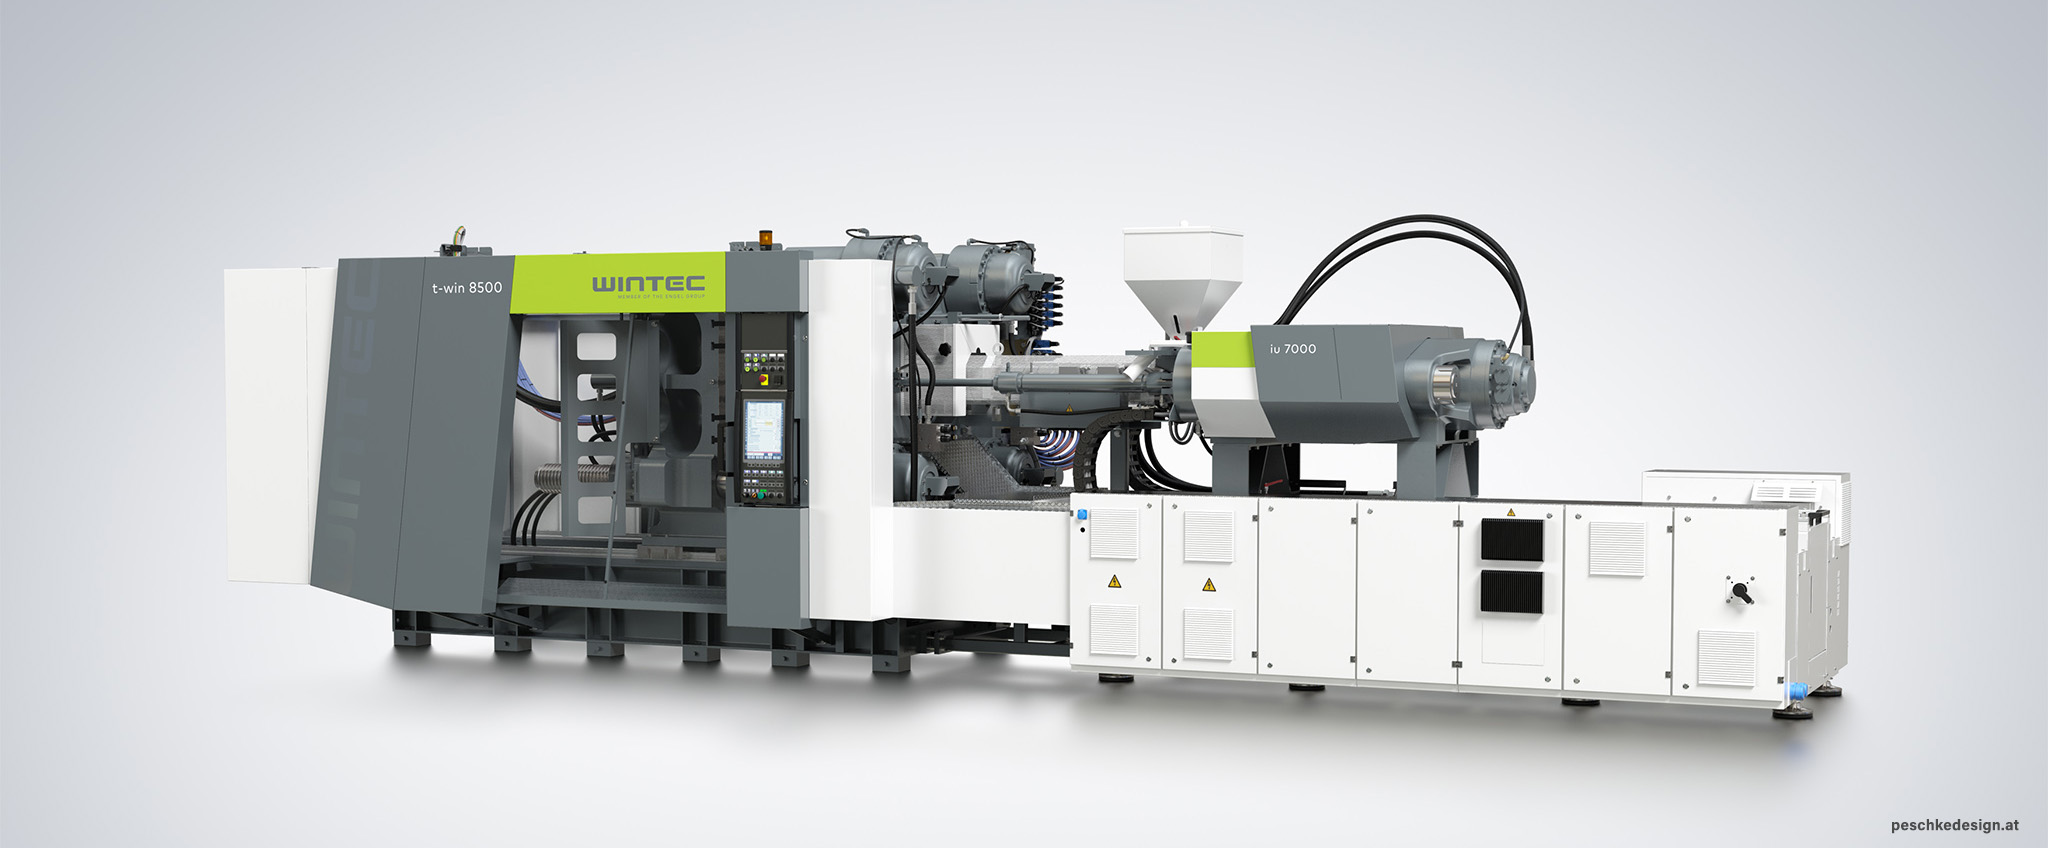 Perspective view of Wintec injection moulding machine.